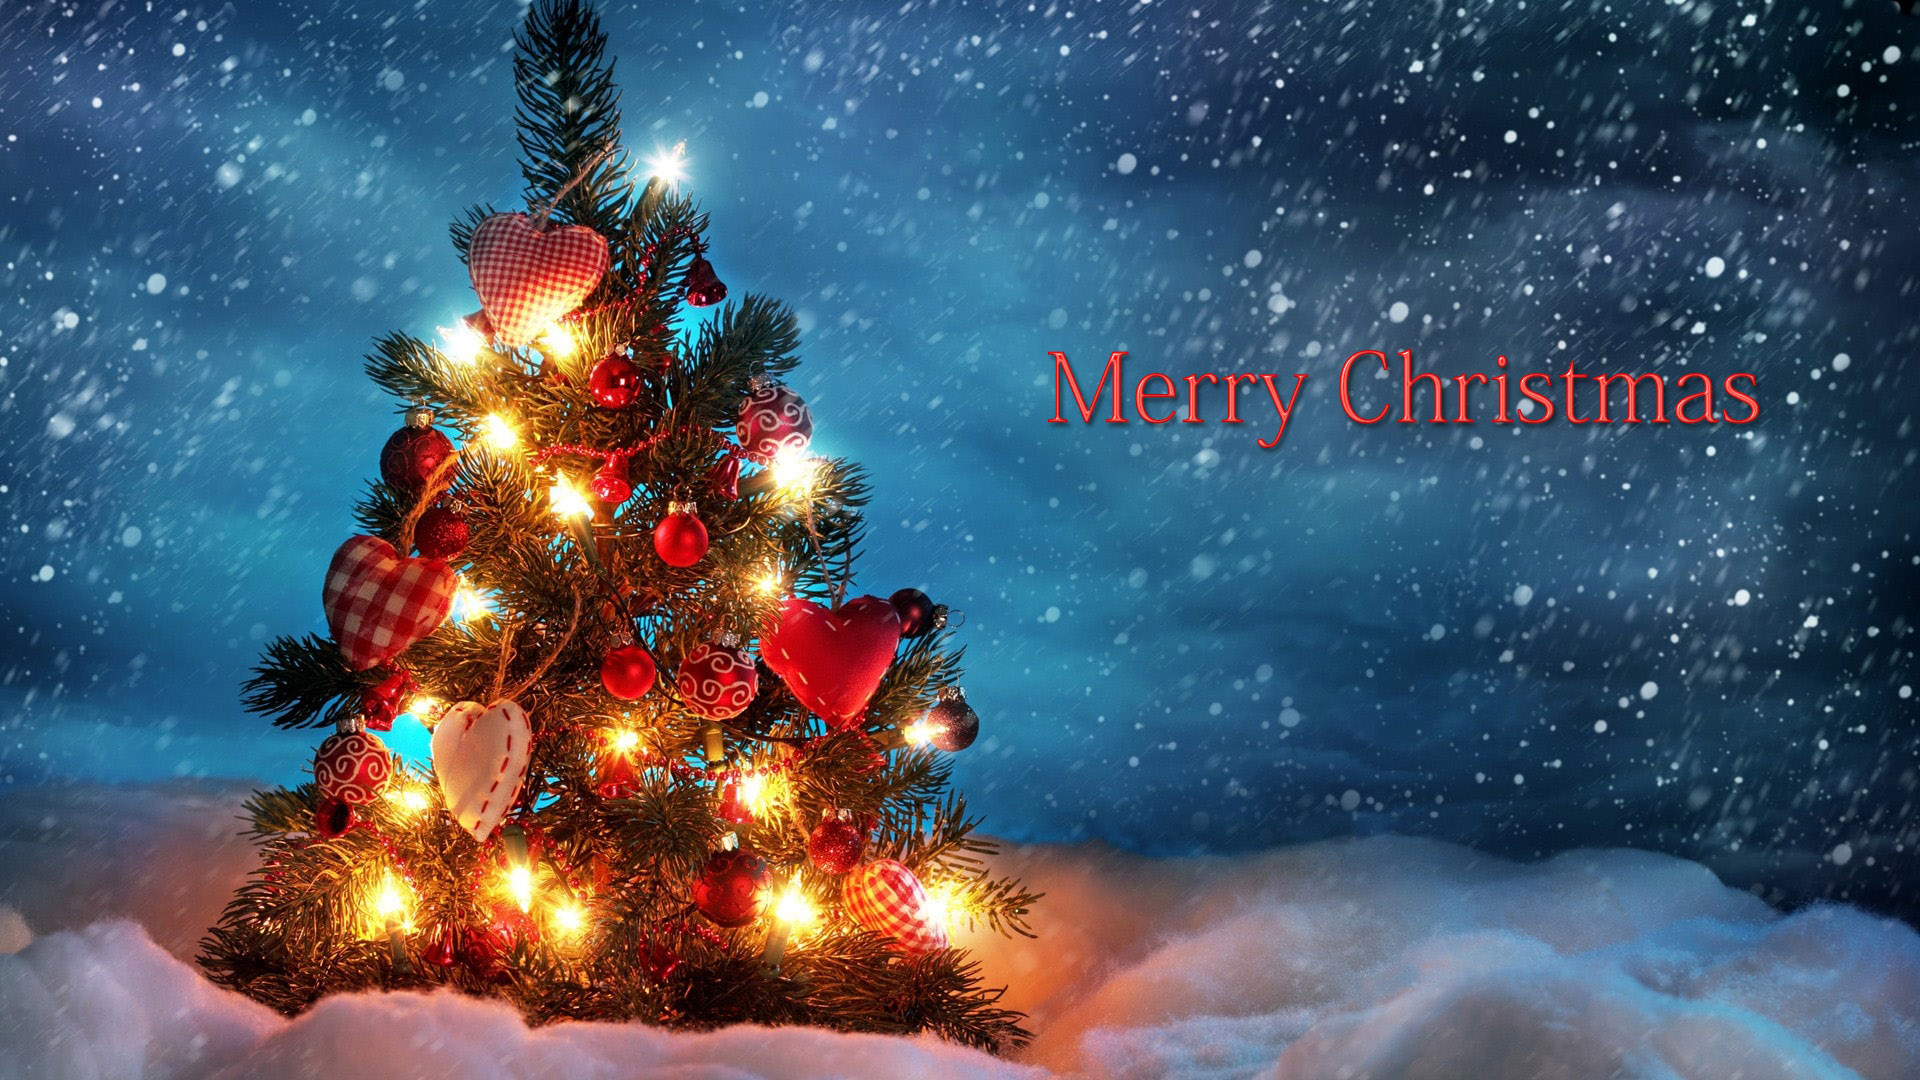 Christmas Images Free Download